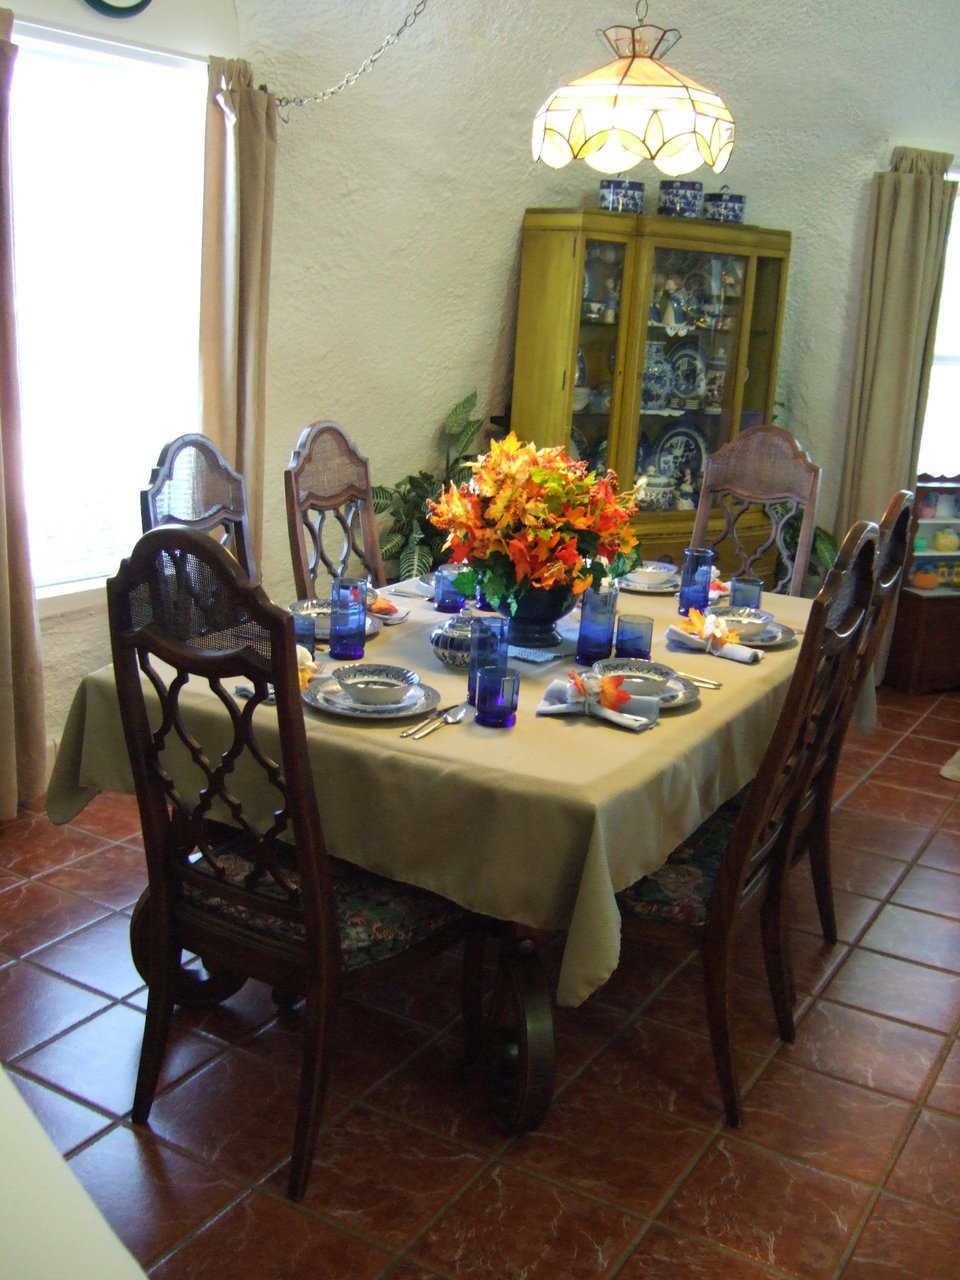 Dining area — It's located just off the kitchen and adjacent to the living area.